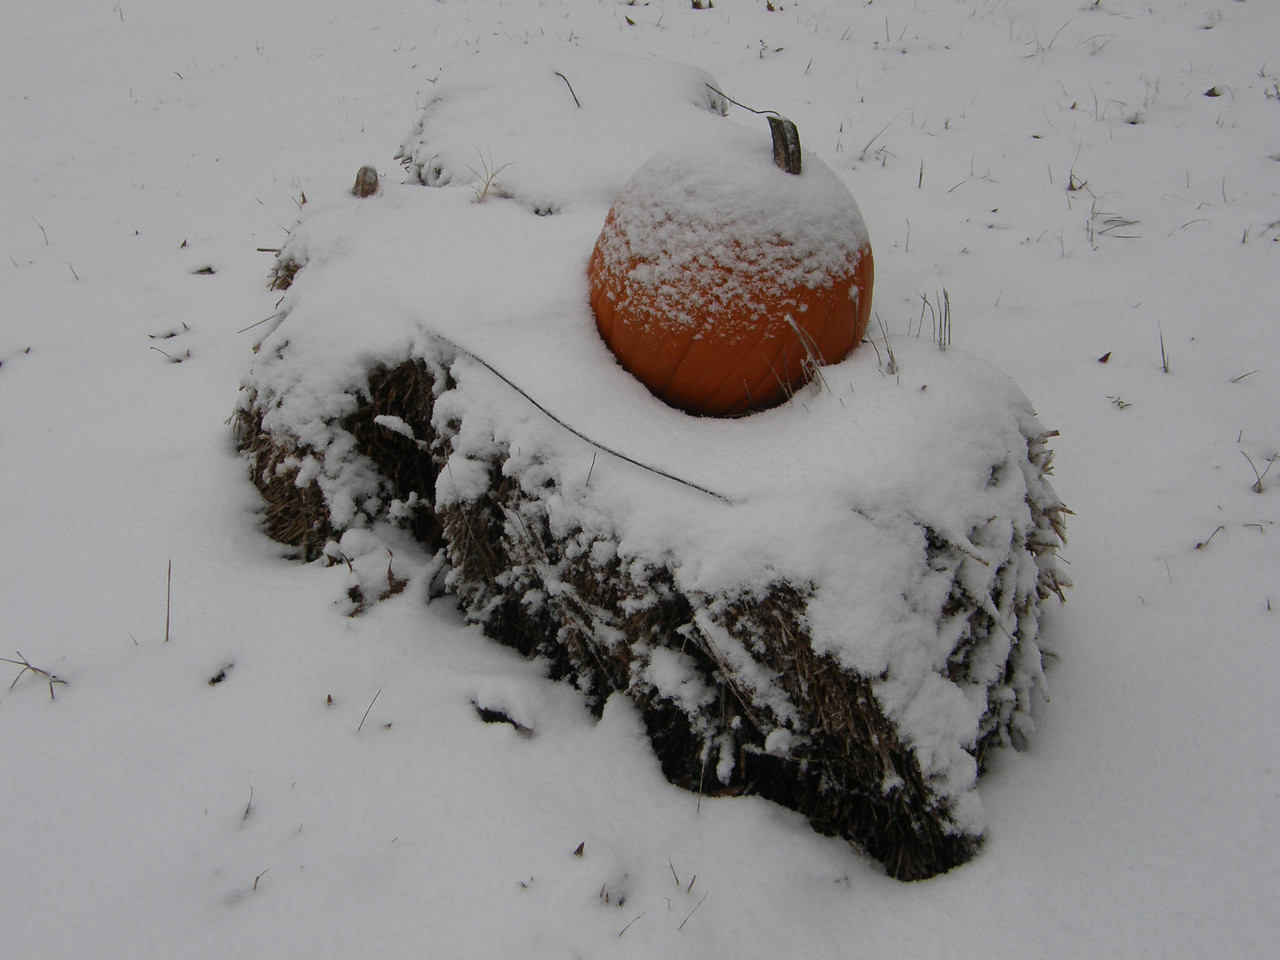 Now this is for sure frost on the pumpkin!  Er, I mean snow on the pumpkin!